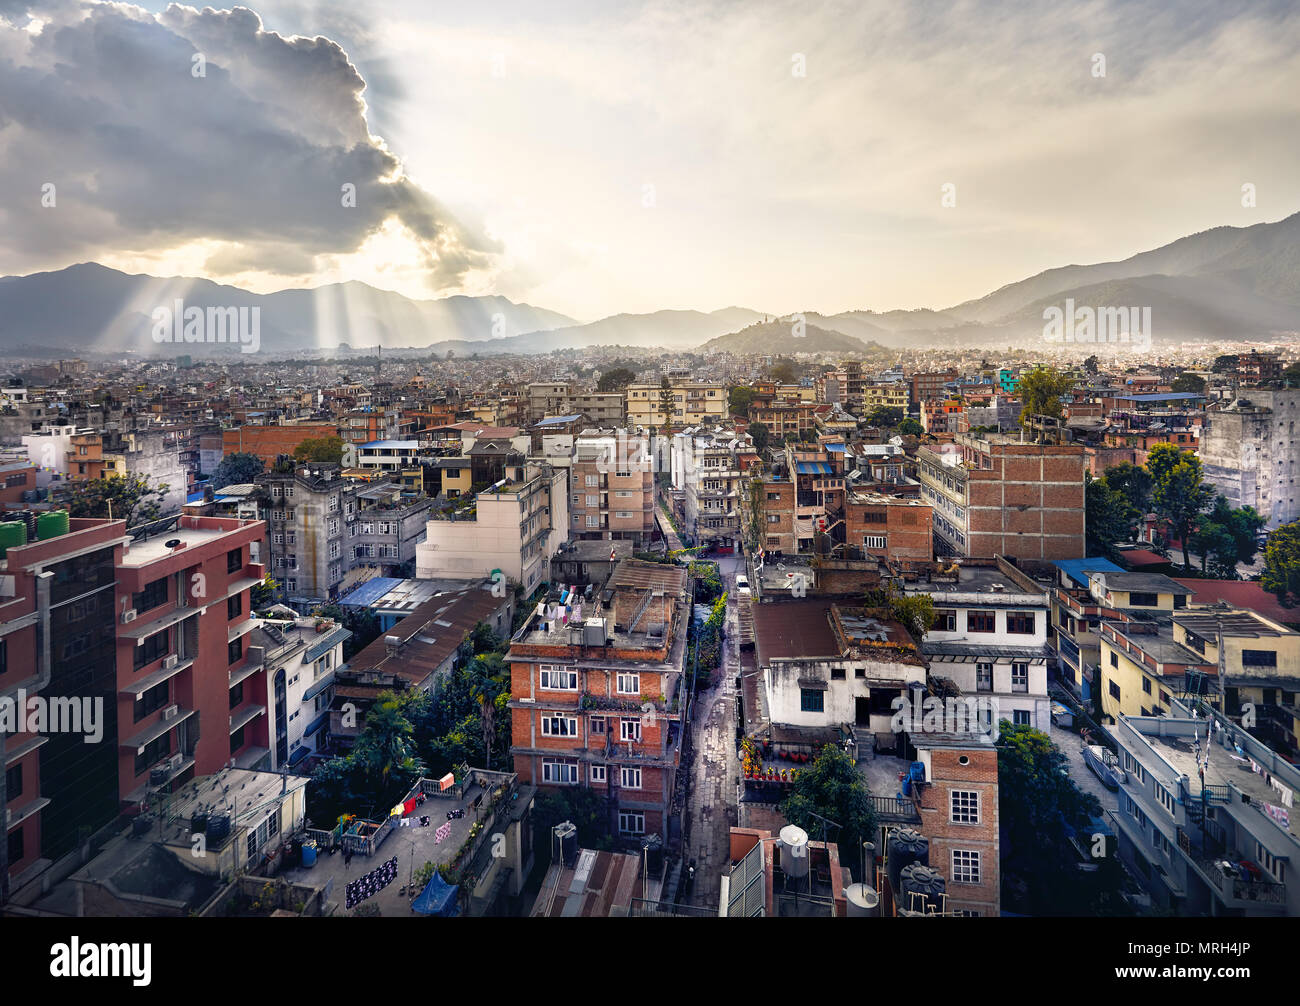 Beautiful view of Kathmandu the capital of Nepal from rooftop at sunset - Stock Image